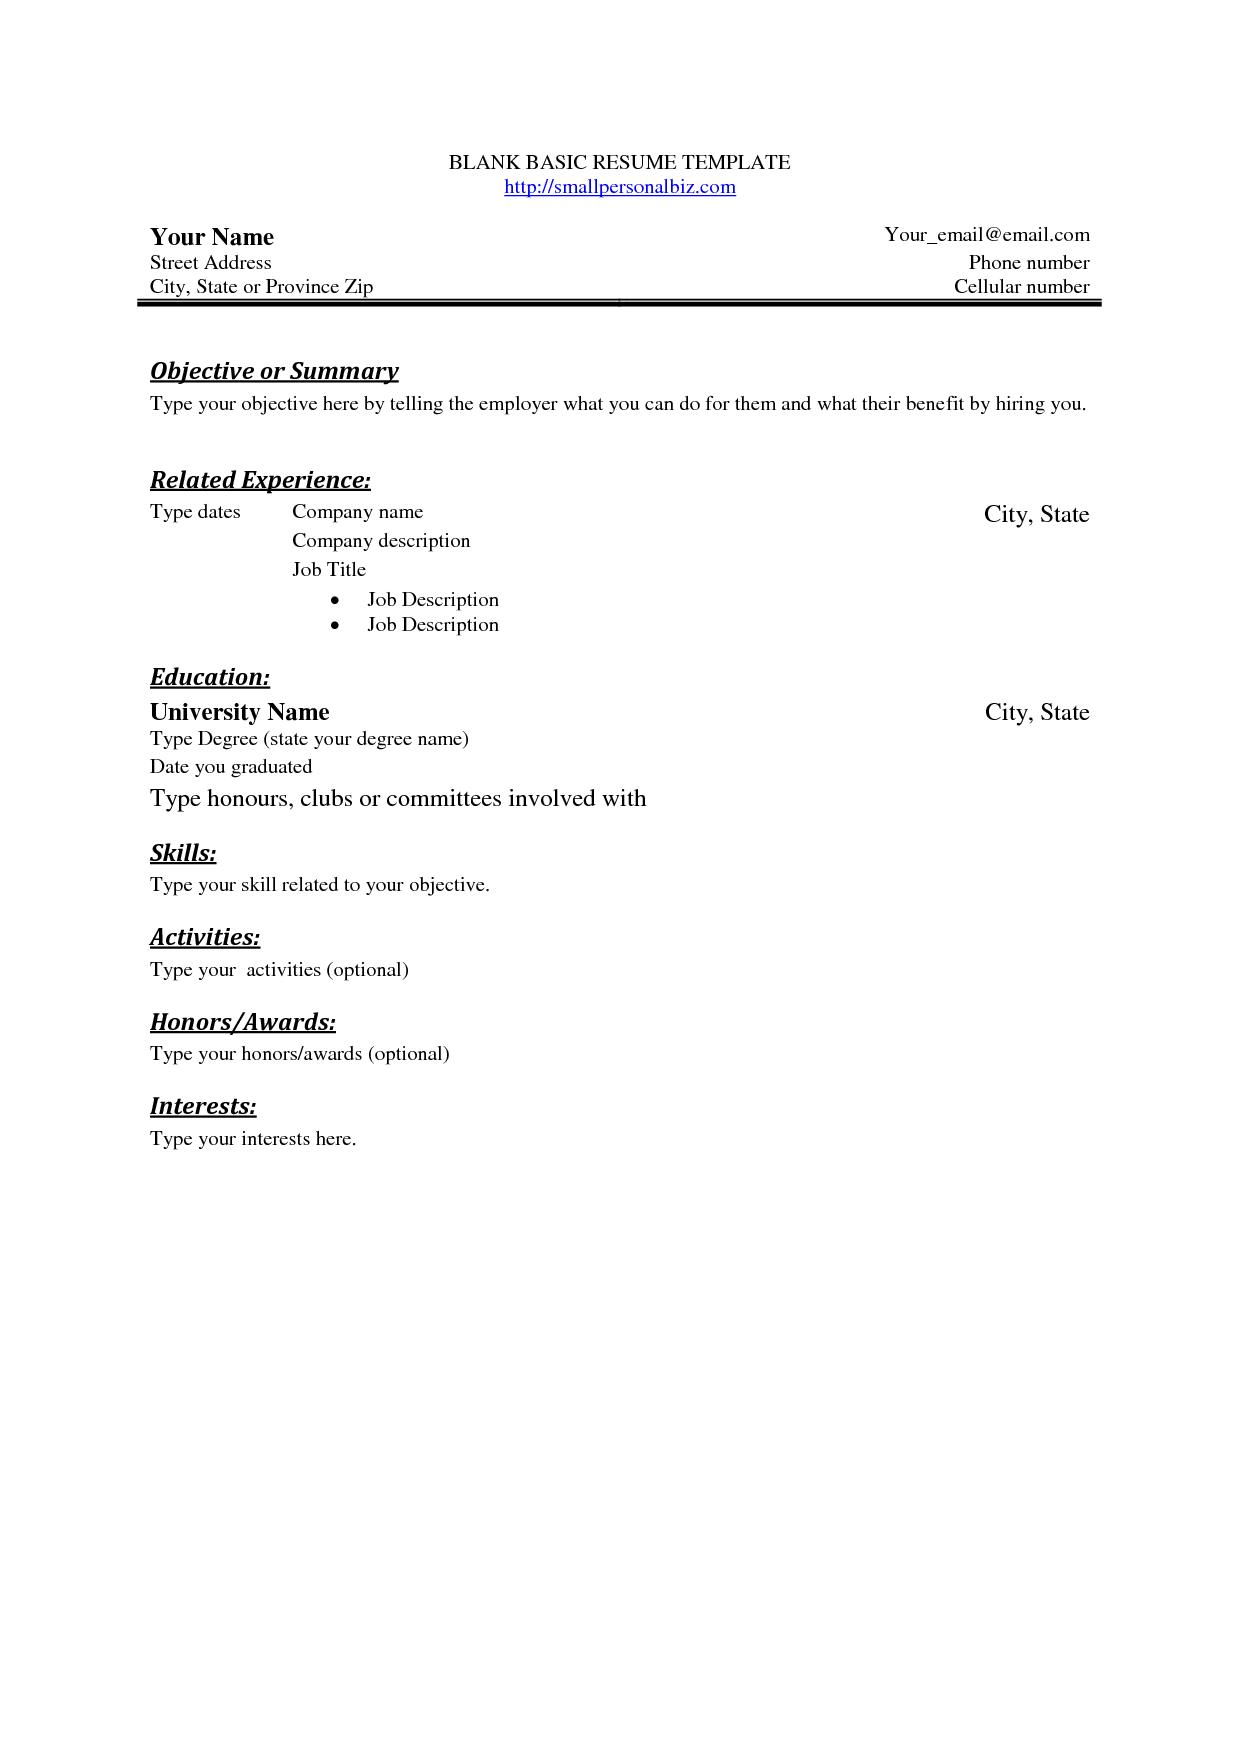 Blank Sample Resume